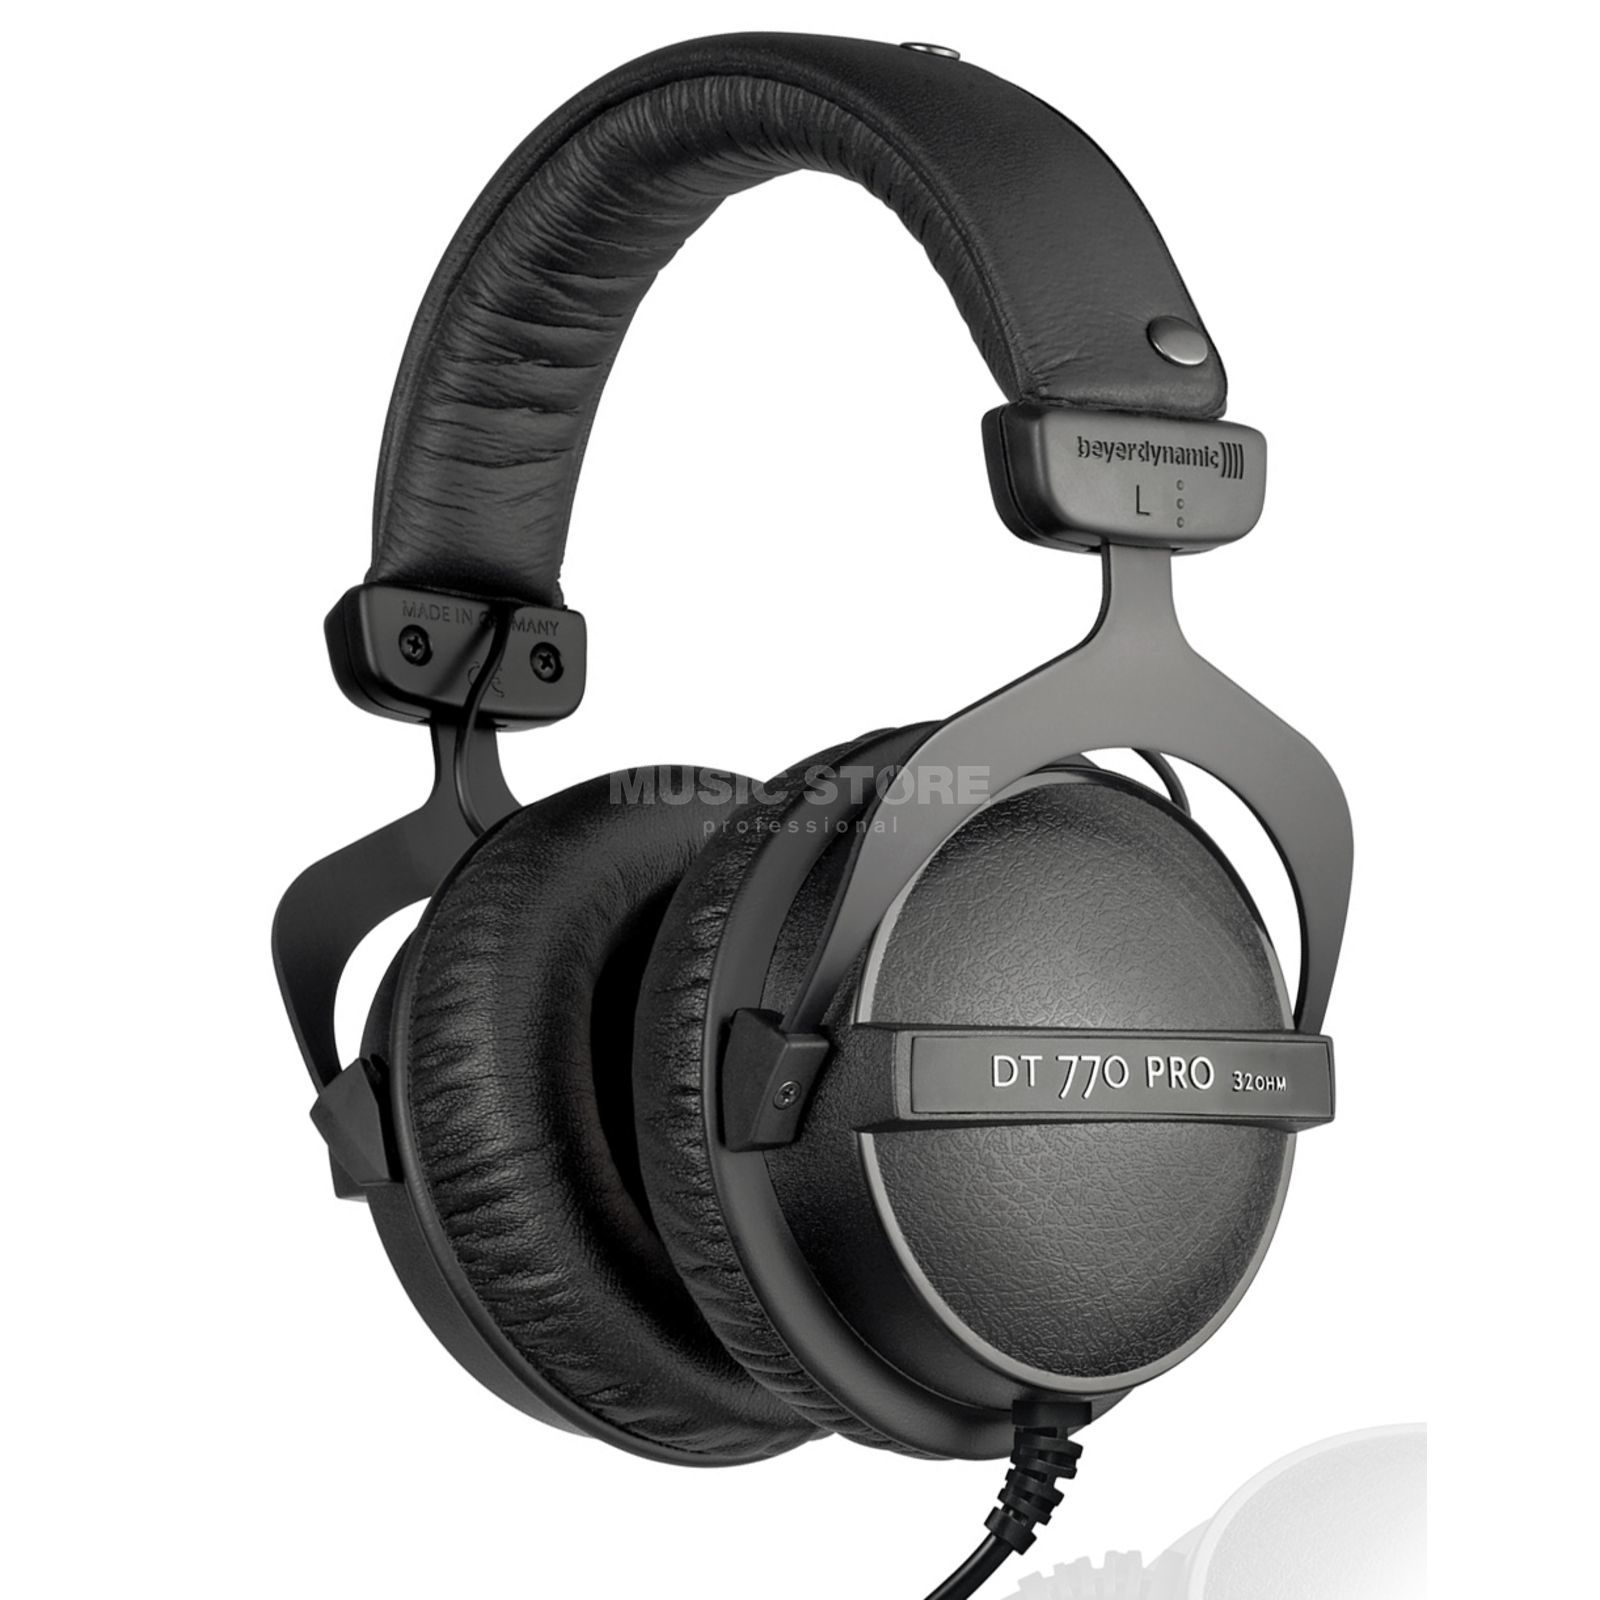 beyerdynamic dt 770 pro 32 ohm closed studio headphones. Black Bedroom Furniture Sets. Home Design Ideas